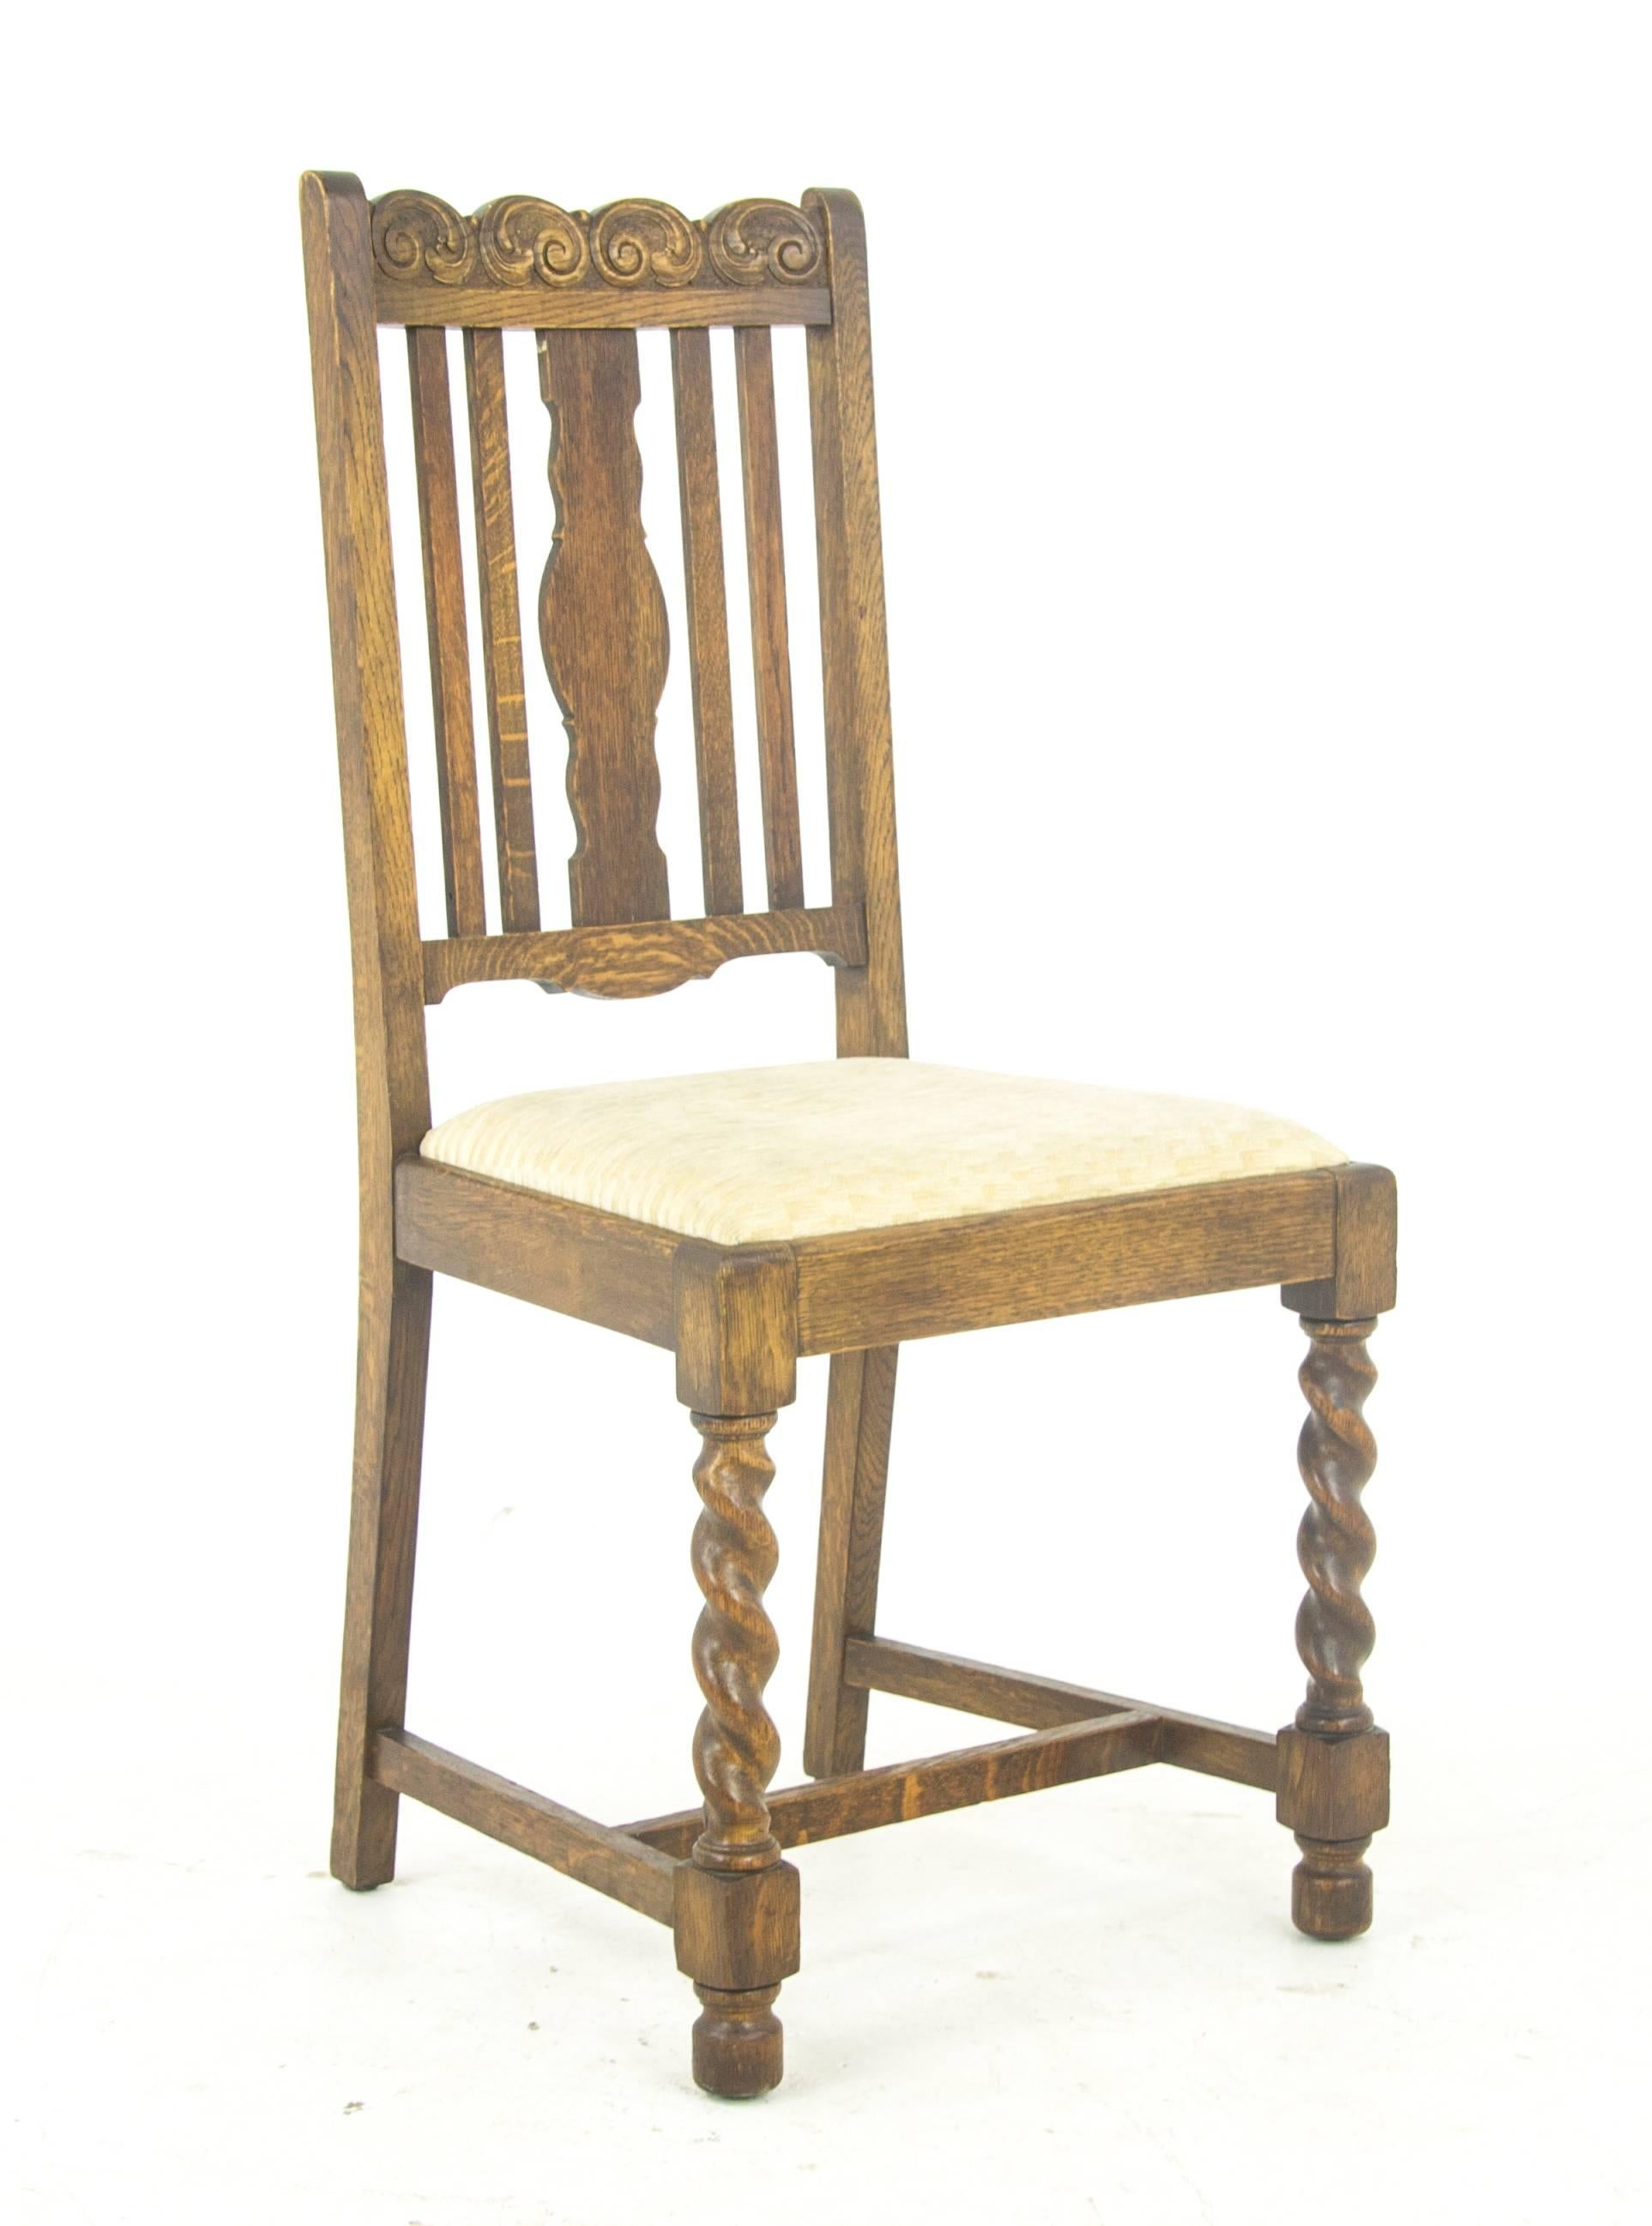 Scottish Antique Dining Chairs Six, Barley Twist Oak, Antique Furniture,  Scotland, 1920s